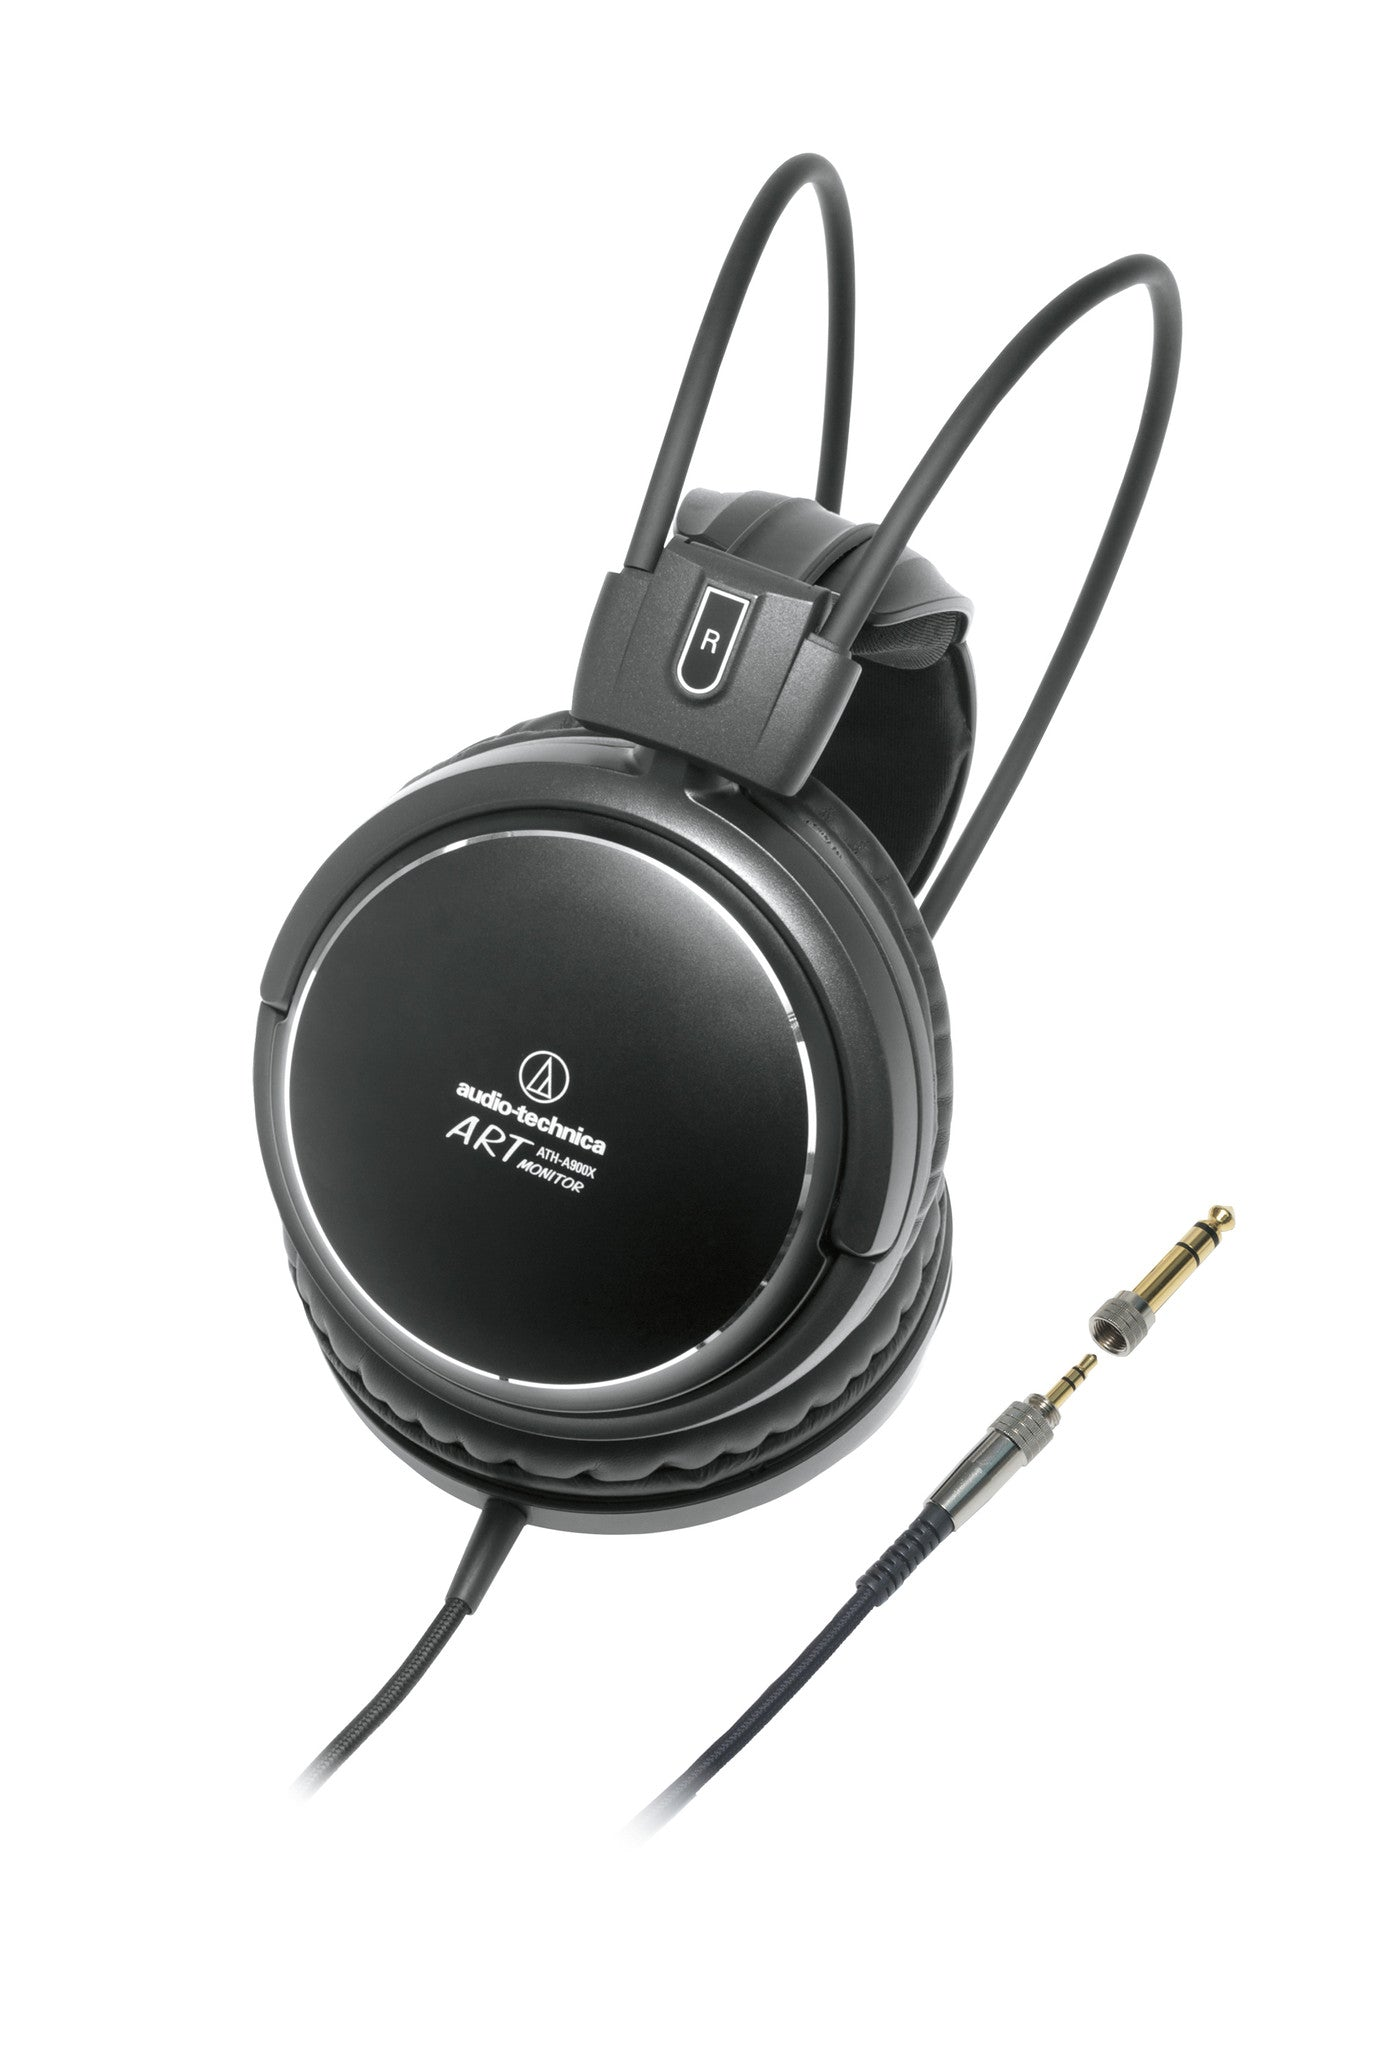 Audio Technica ATH-A900x Audiophile Closed-back Dynamic Headphone